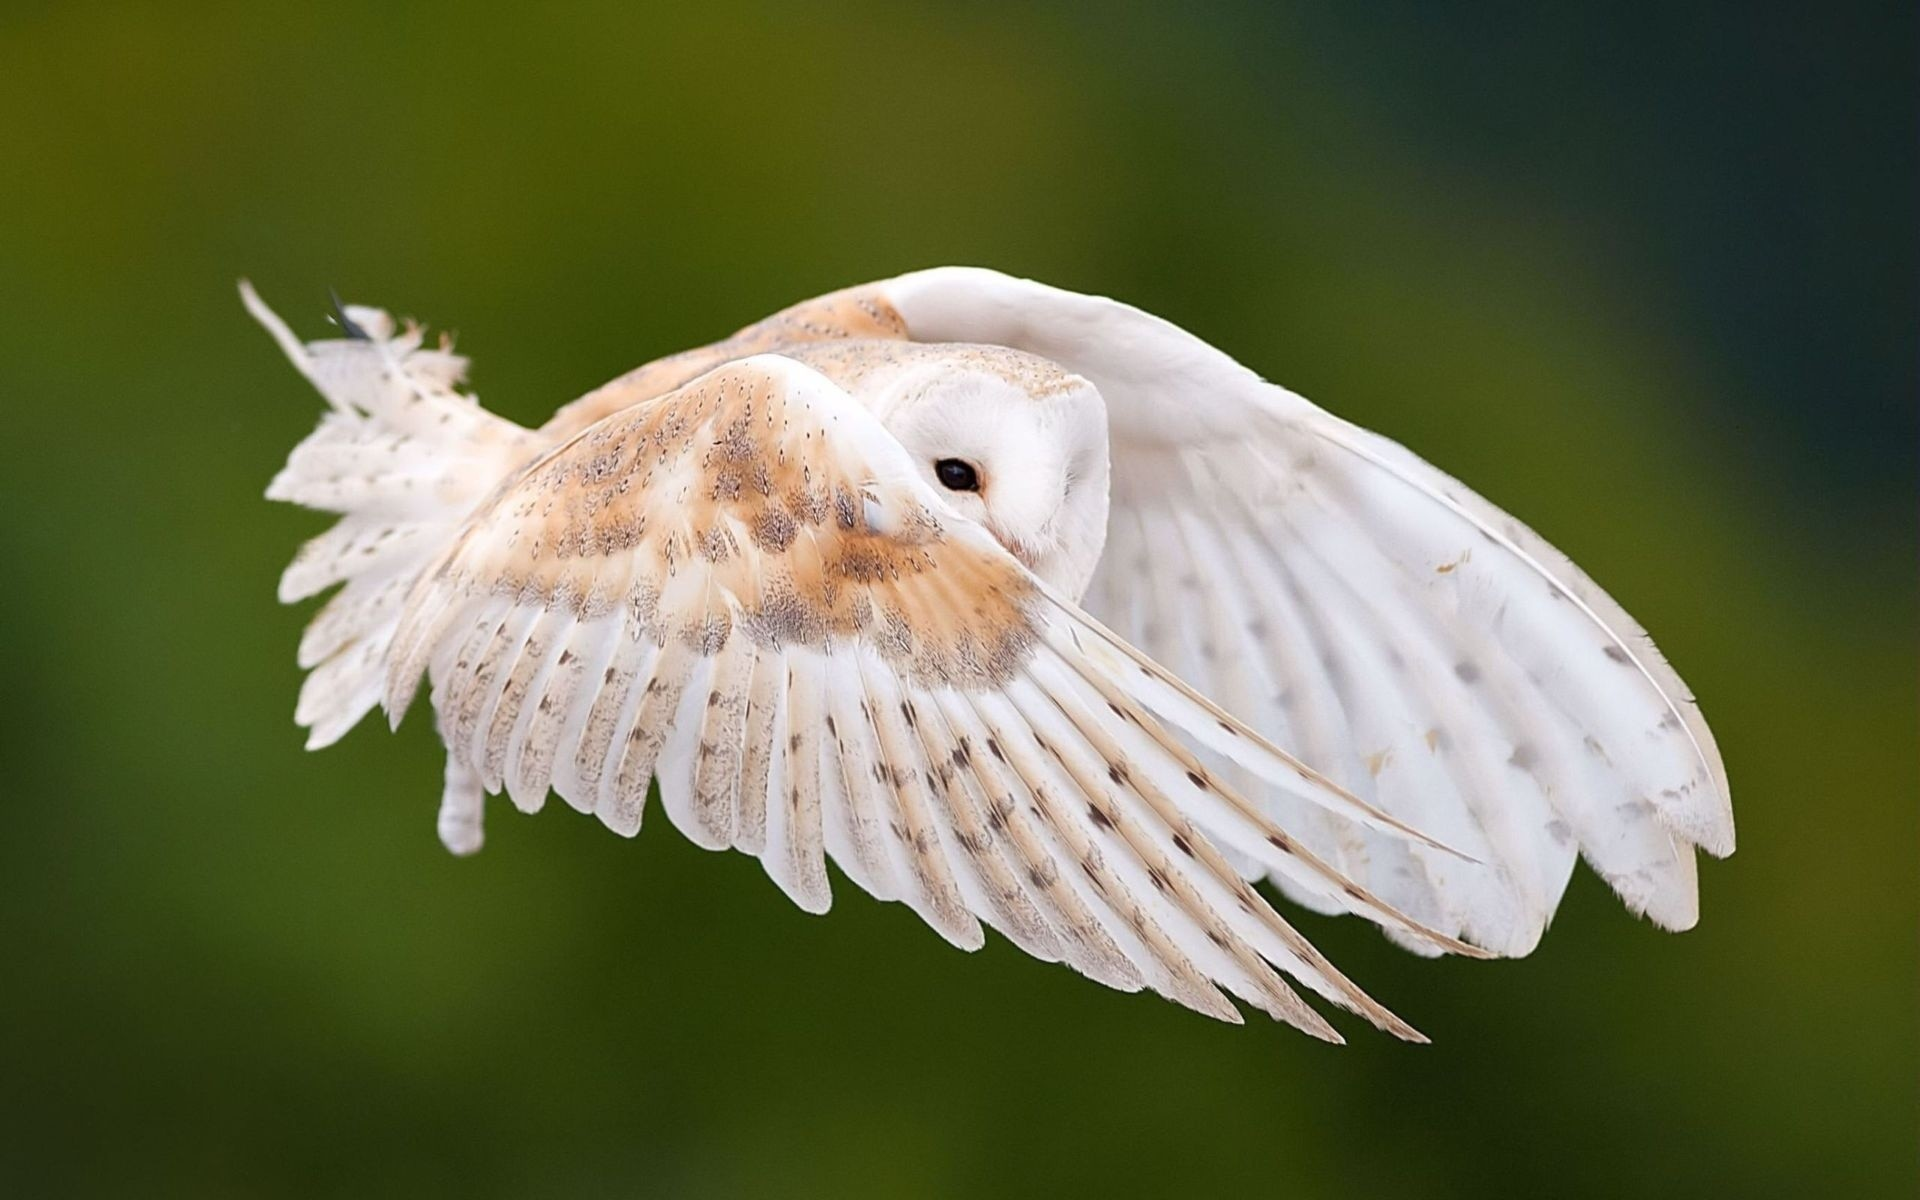 Photo western barn owl by wise photographie on